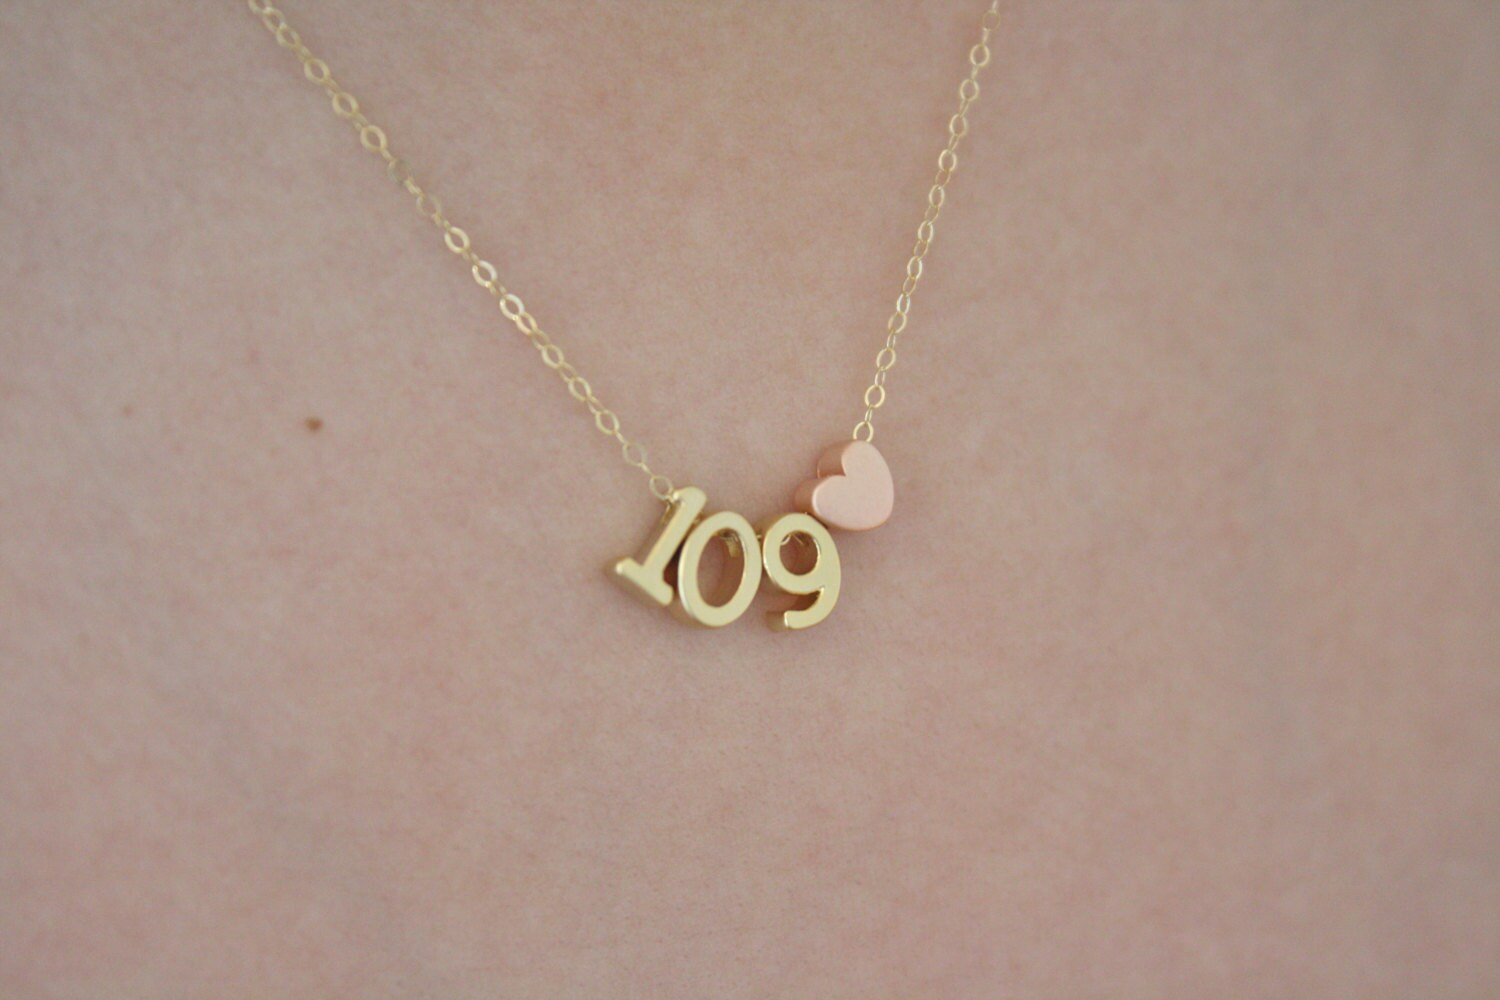 Number necklace gold necklace badge number necklace zoom aloadofball Image collections